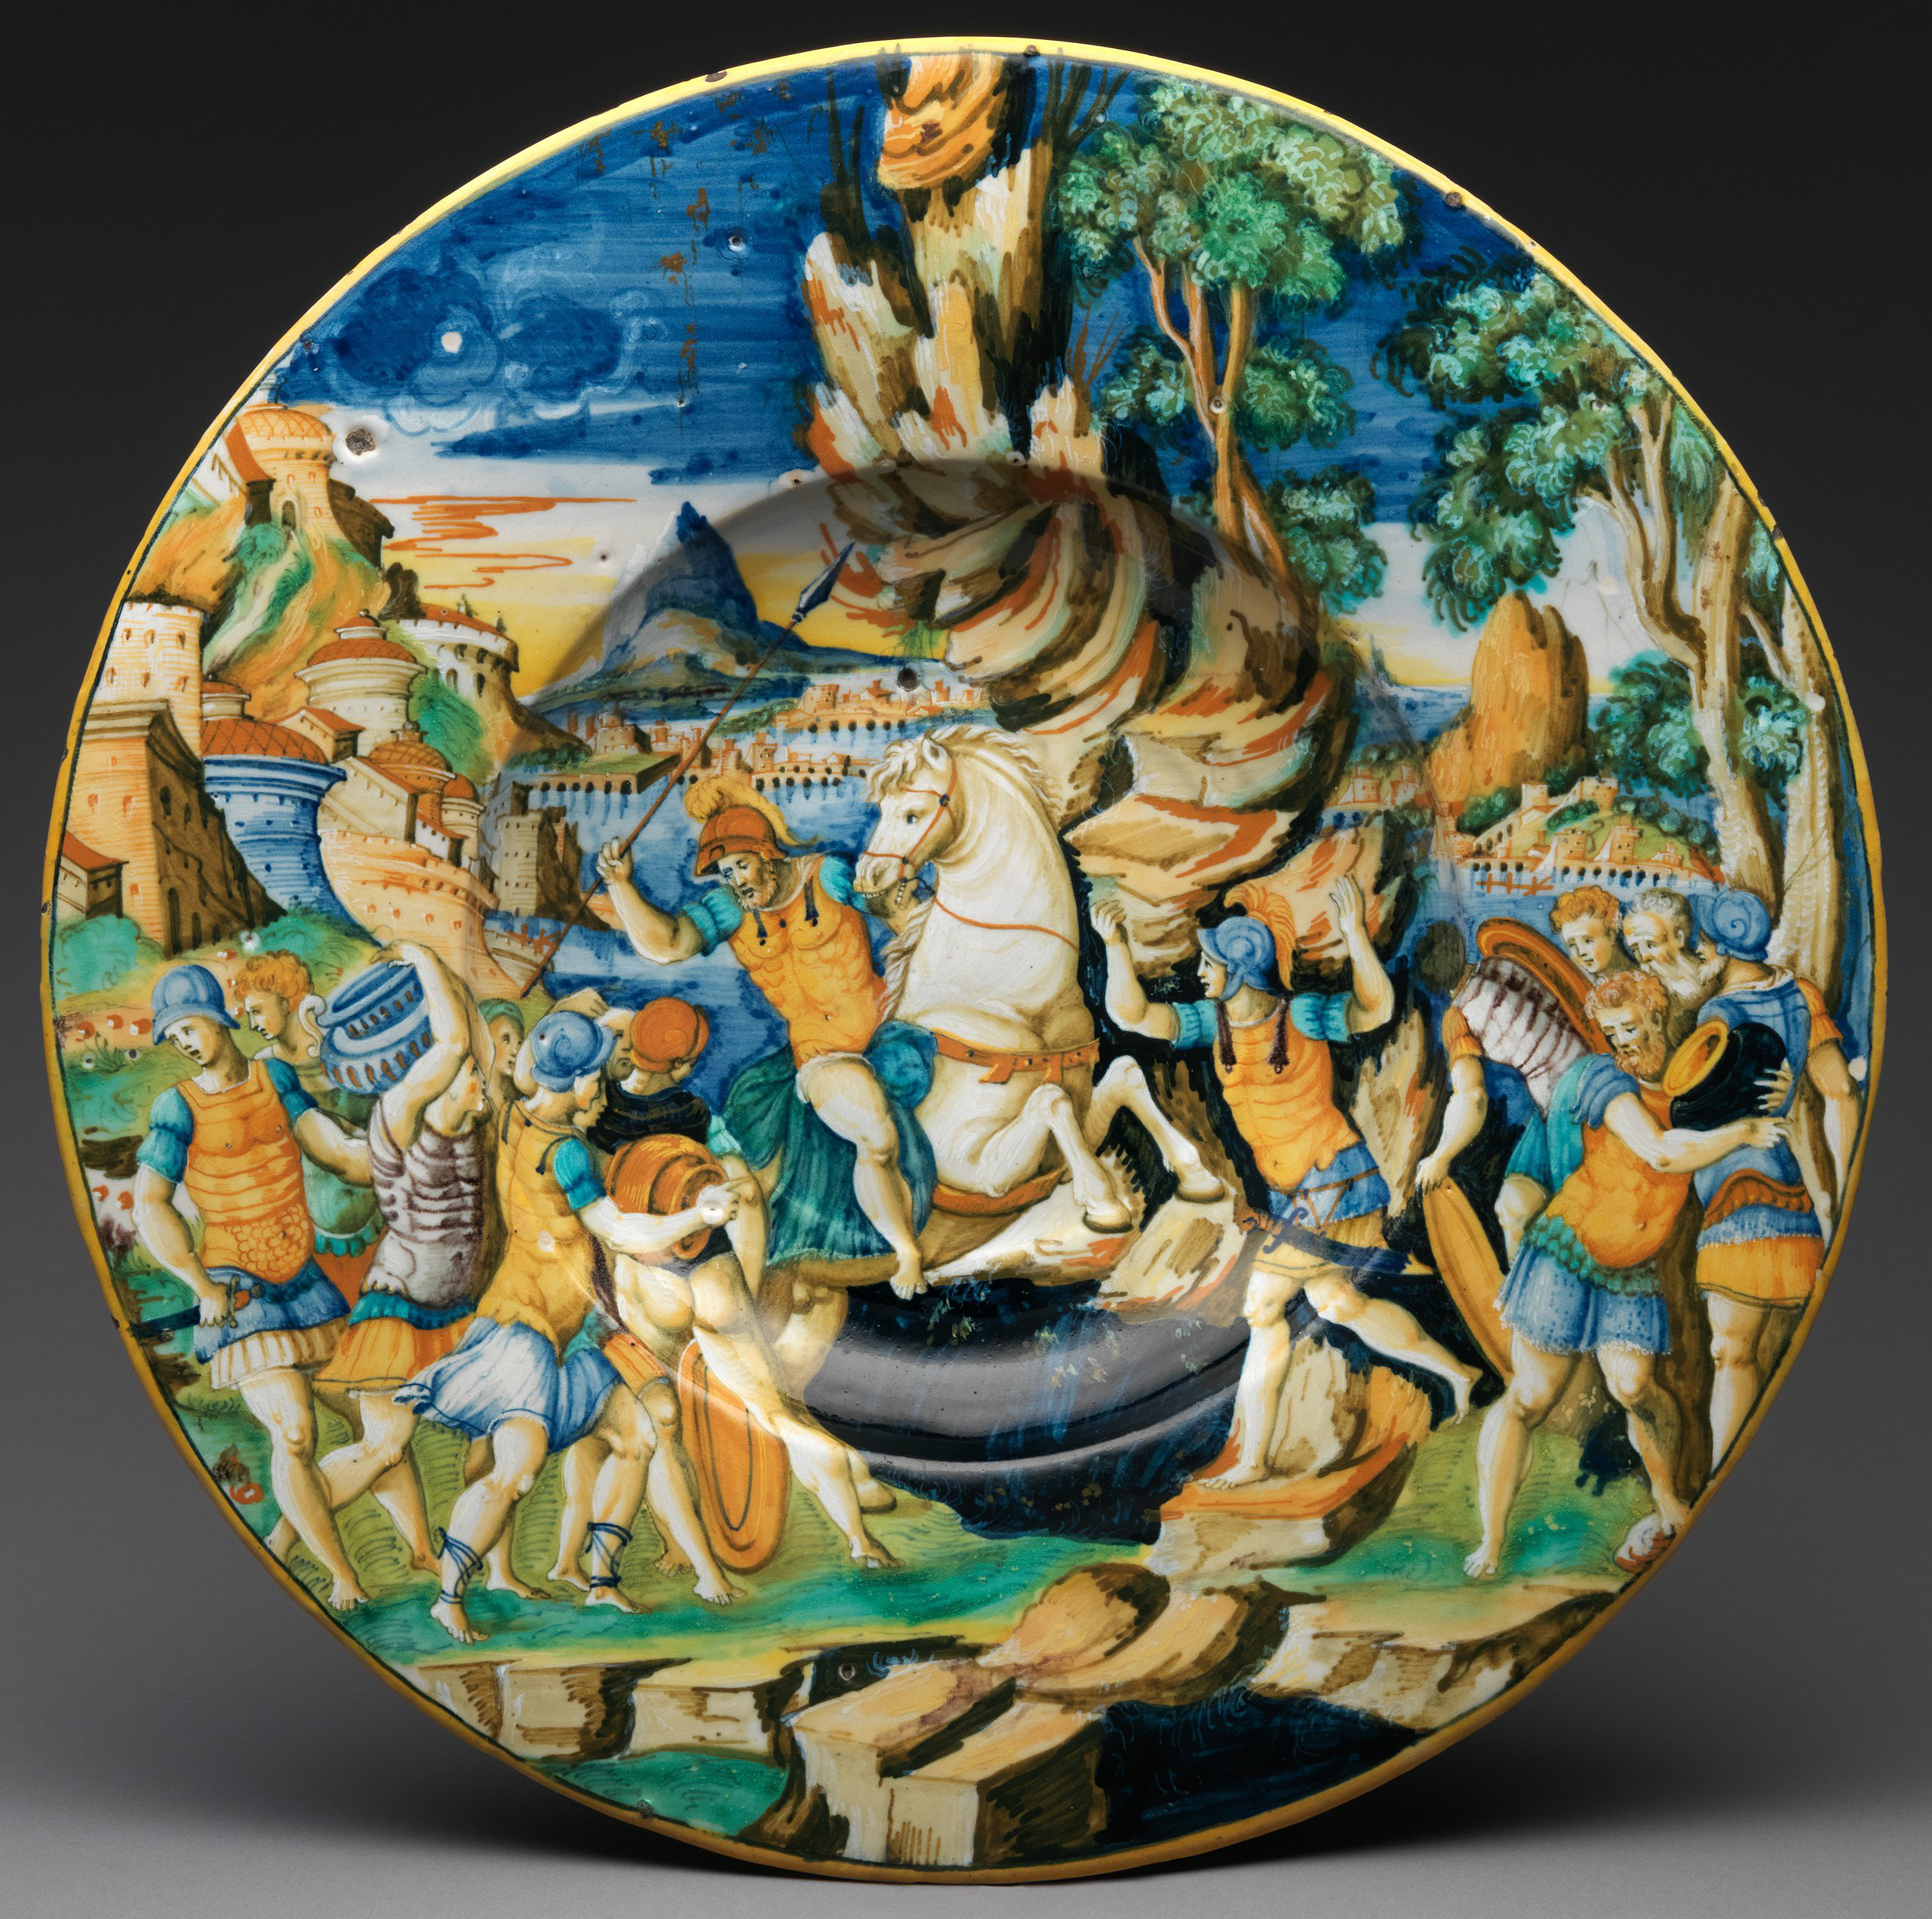 Plate with The Heroism of Marcus Curtius, 1542, workshop of Guido de Merlino, Urbino